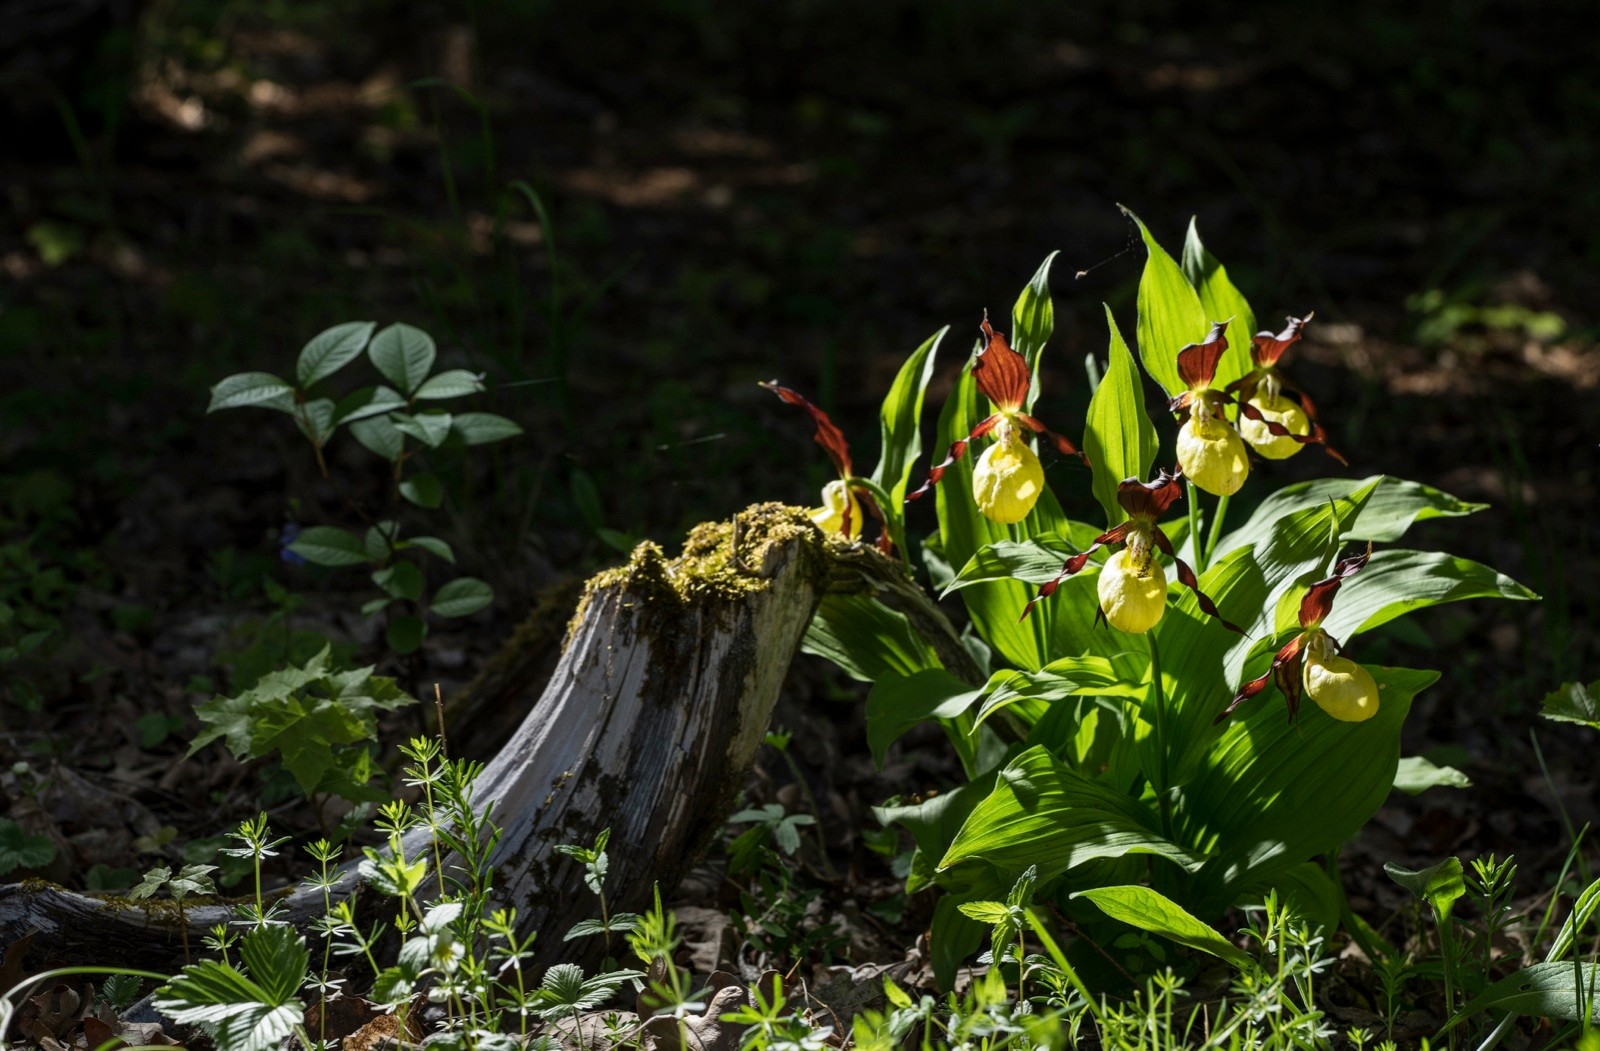 Lady's Slipper Orchid flower. Yellow with red petals blooming flower in natural environment. Lady Slipper, Cypripedium calceolus.  Kesselaid, a small island in Estonia. Nordic countries, Europe